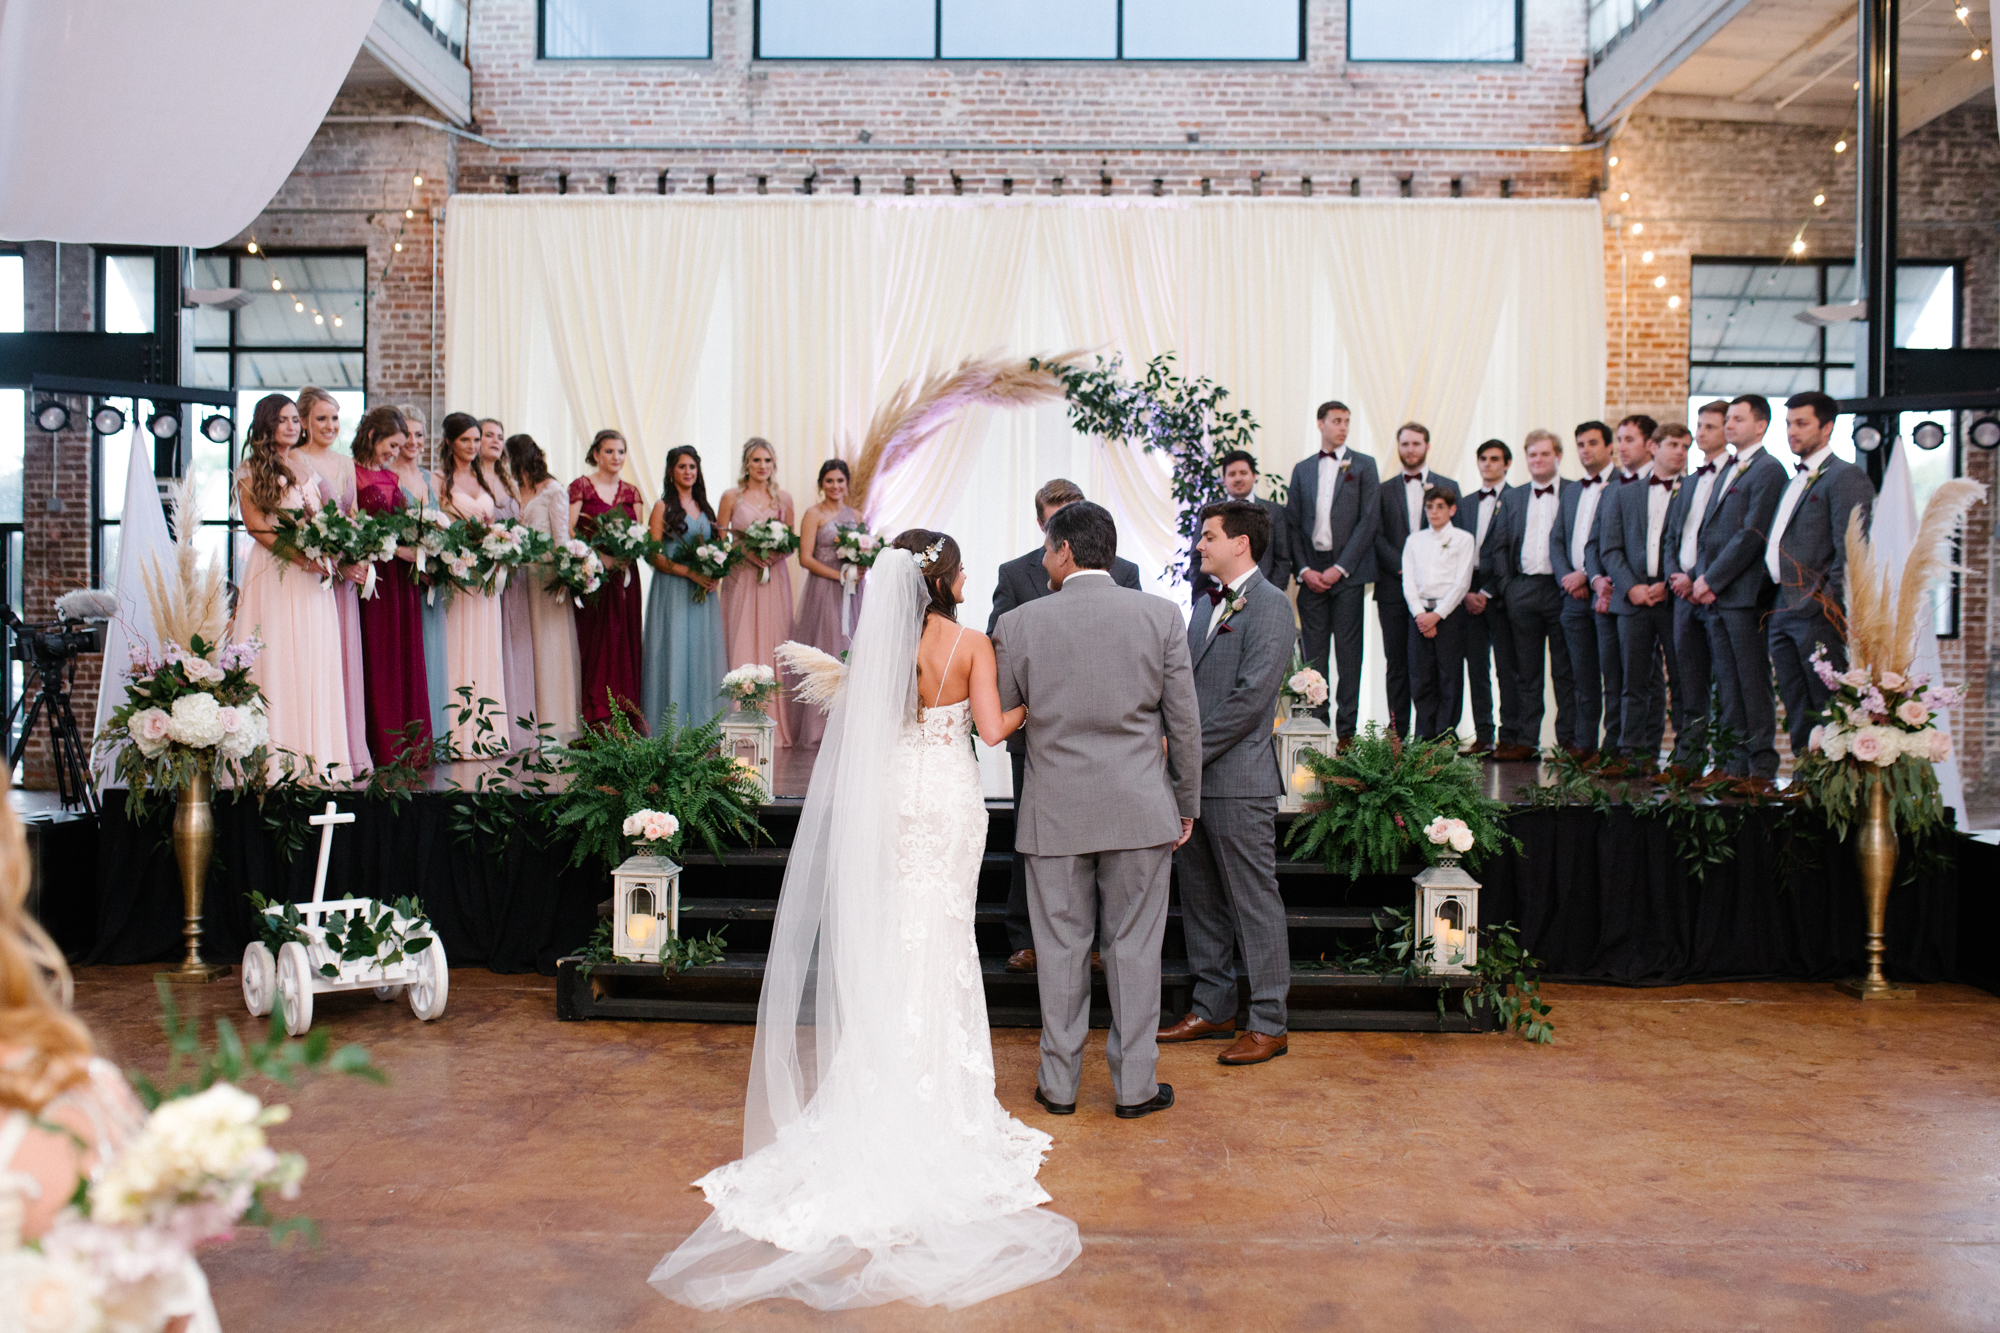 Gulfport_Wedding_Photographer-65.jpg